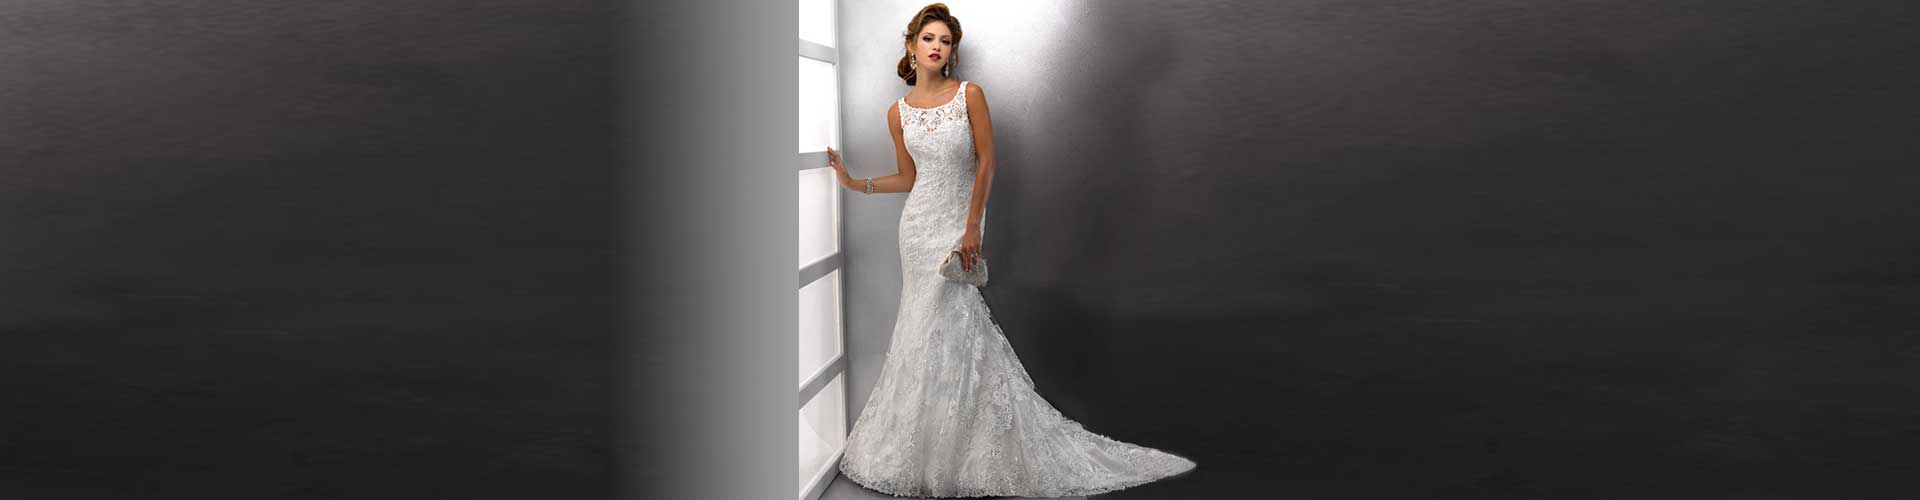 BRIDAL GOWNS BY